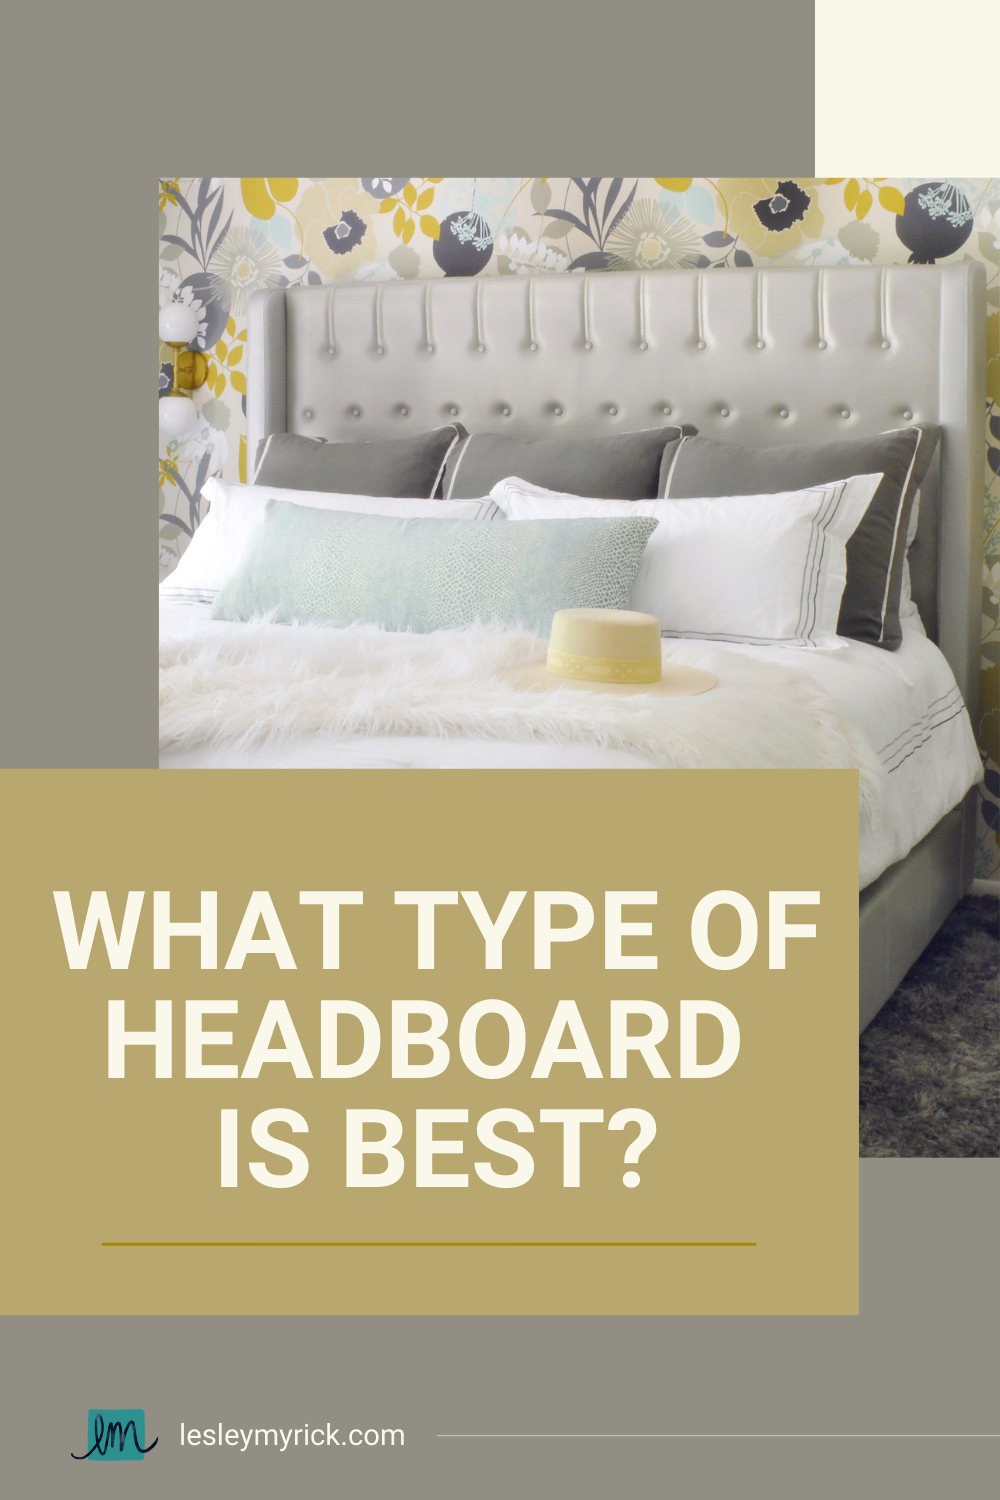 We all know a comfy mattress is essential. But what about a headboard? Should you invest in an upholstered headboard, or is a wood or metal one comfortable? And, do you need a headboard or a full bed? SO MANY BED-RELATED QUESTIONS! Here's what type of headboard is best so that you can get a good night's sleep.